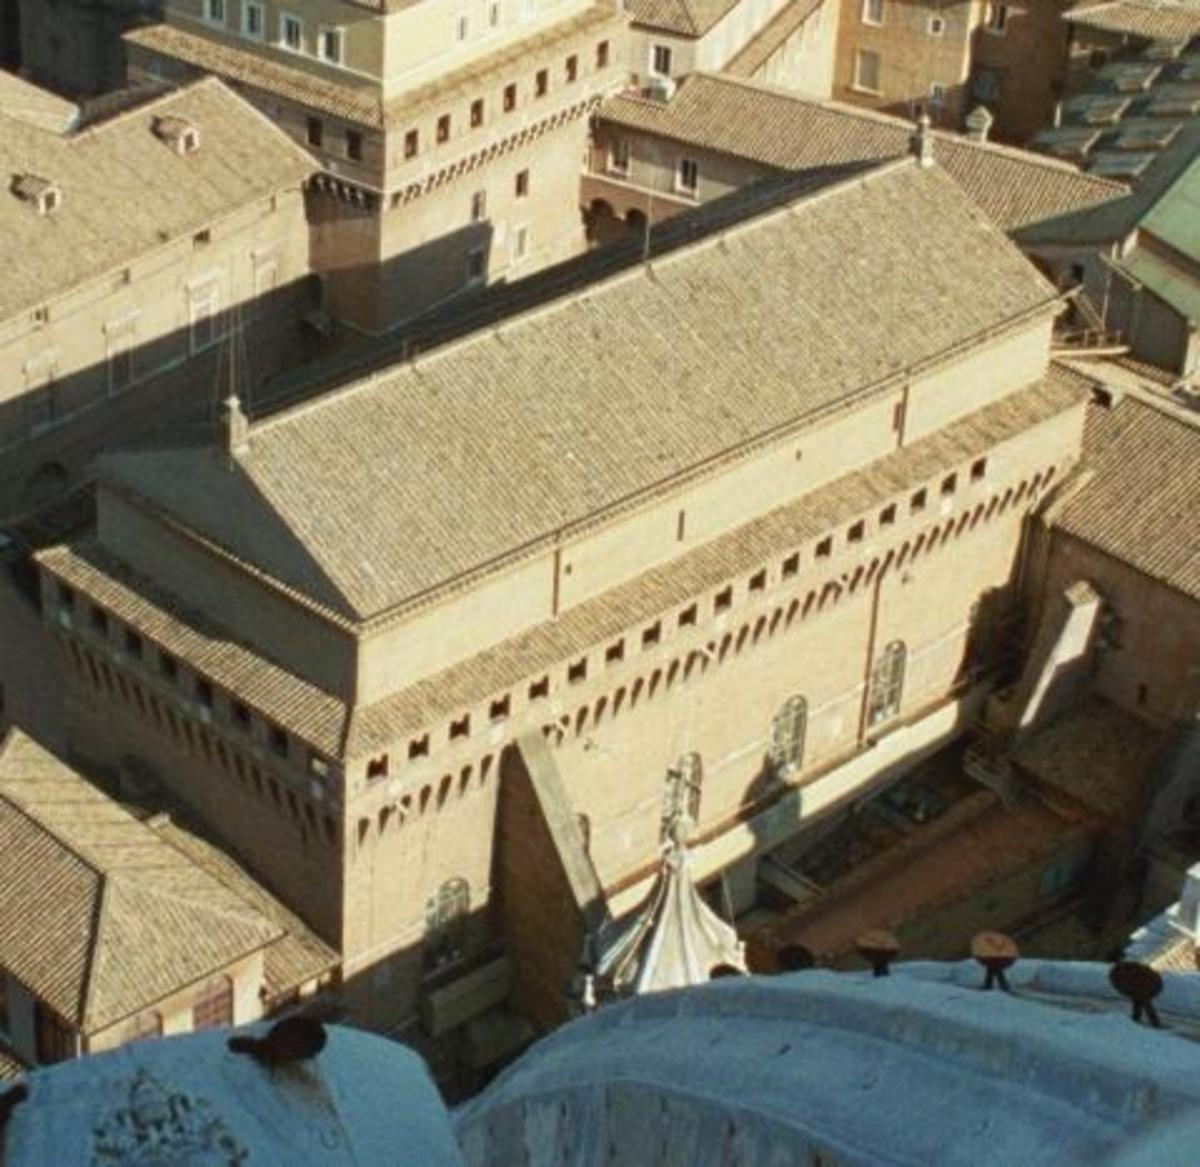 The Sistine Chapel seen from the St. Peter Dome